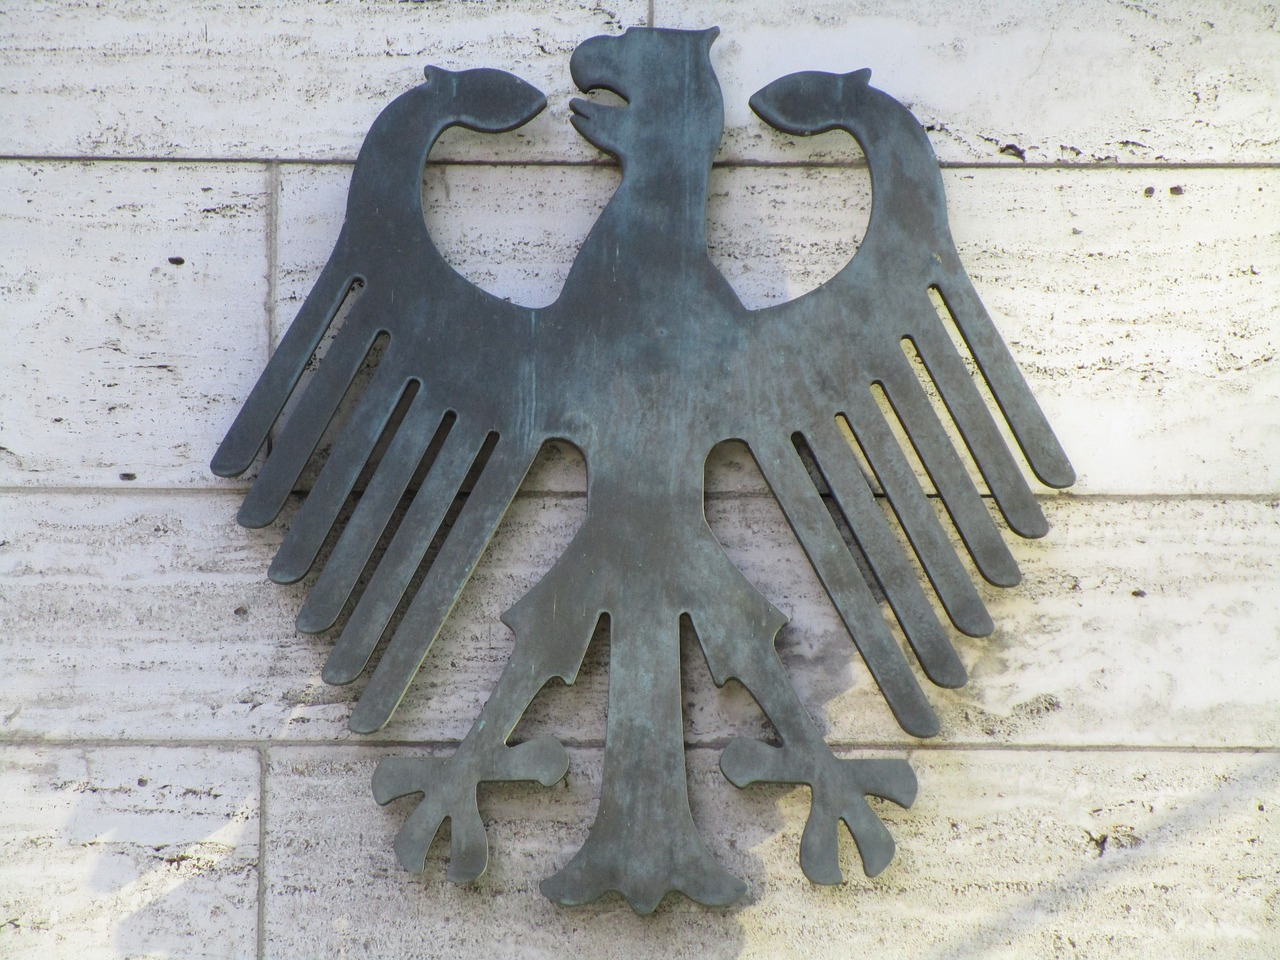 federal eagle,adler,heraldic animal,bundestag,germany,reichstag,architecture,berlin government,government,capital,law,determination,rights,government buildings,free pictures, free photos, free images, royalty free, free illustrations, public domain